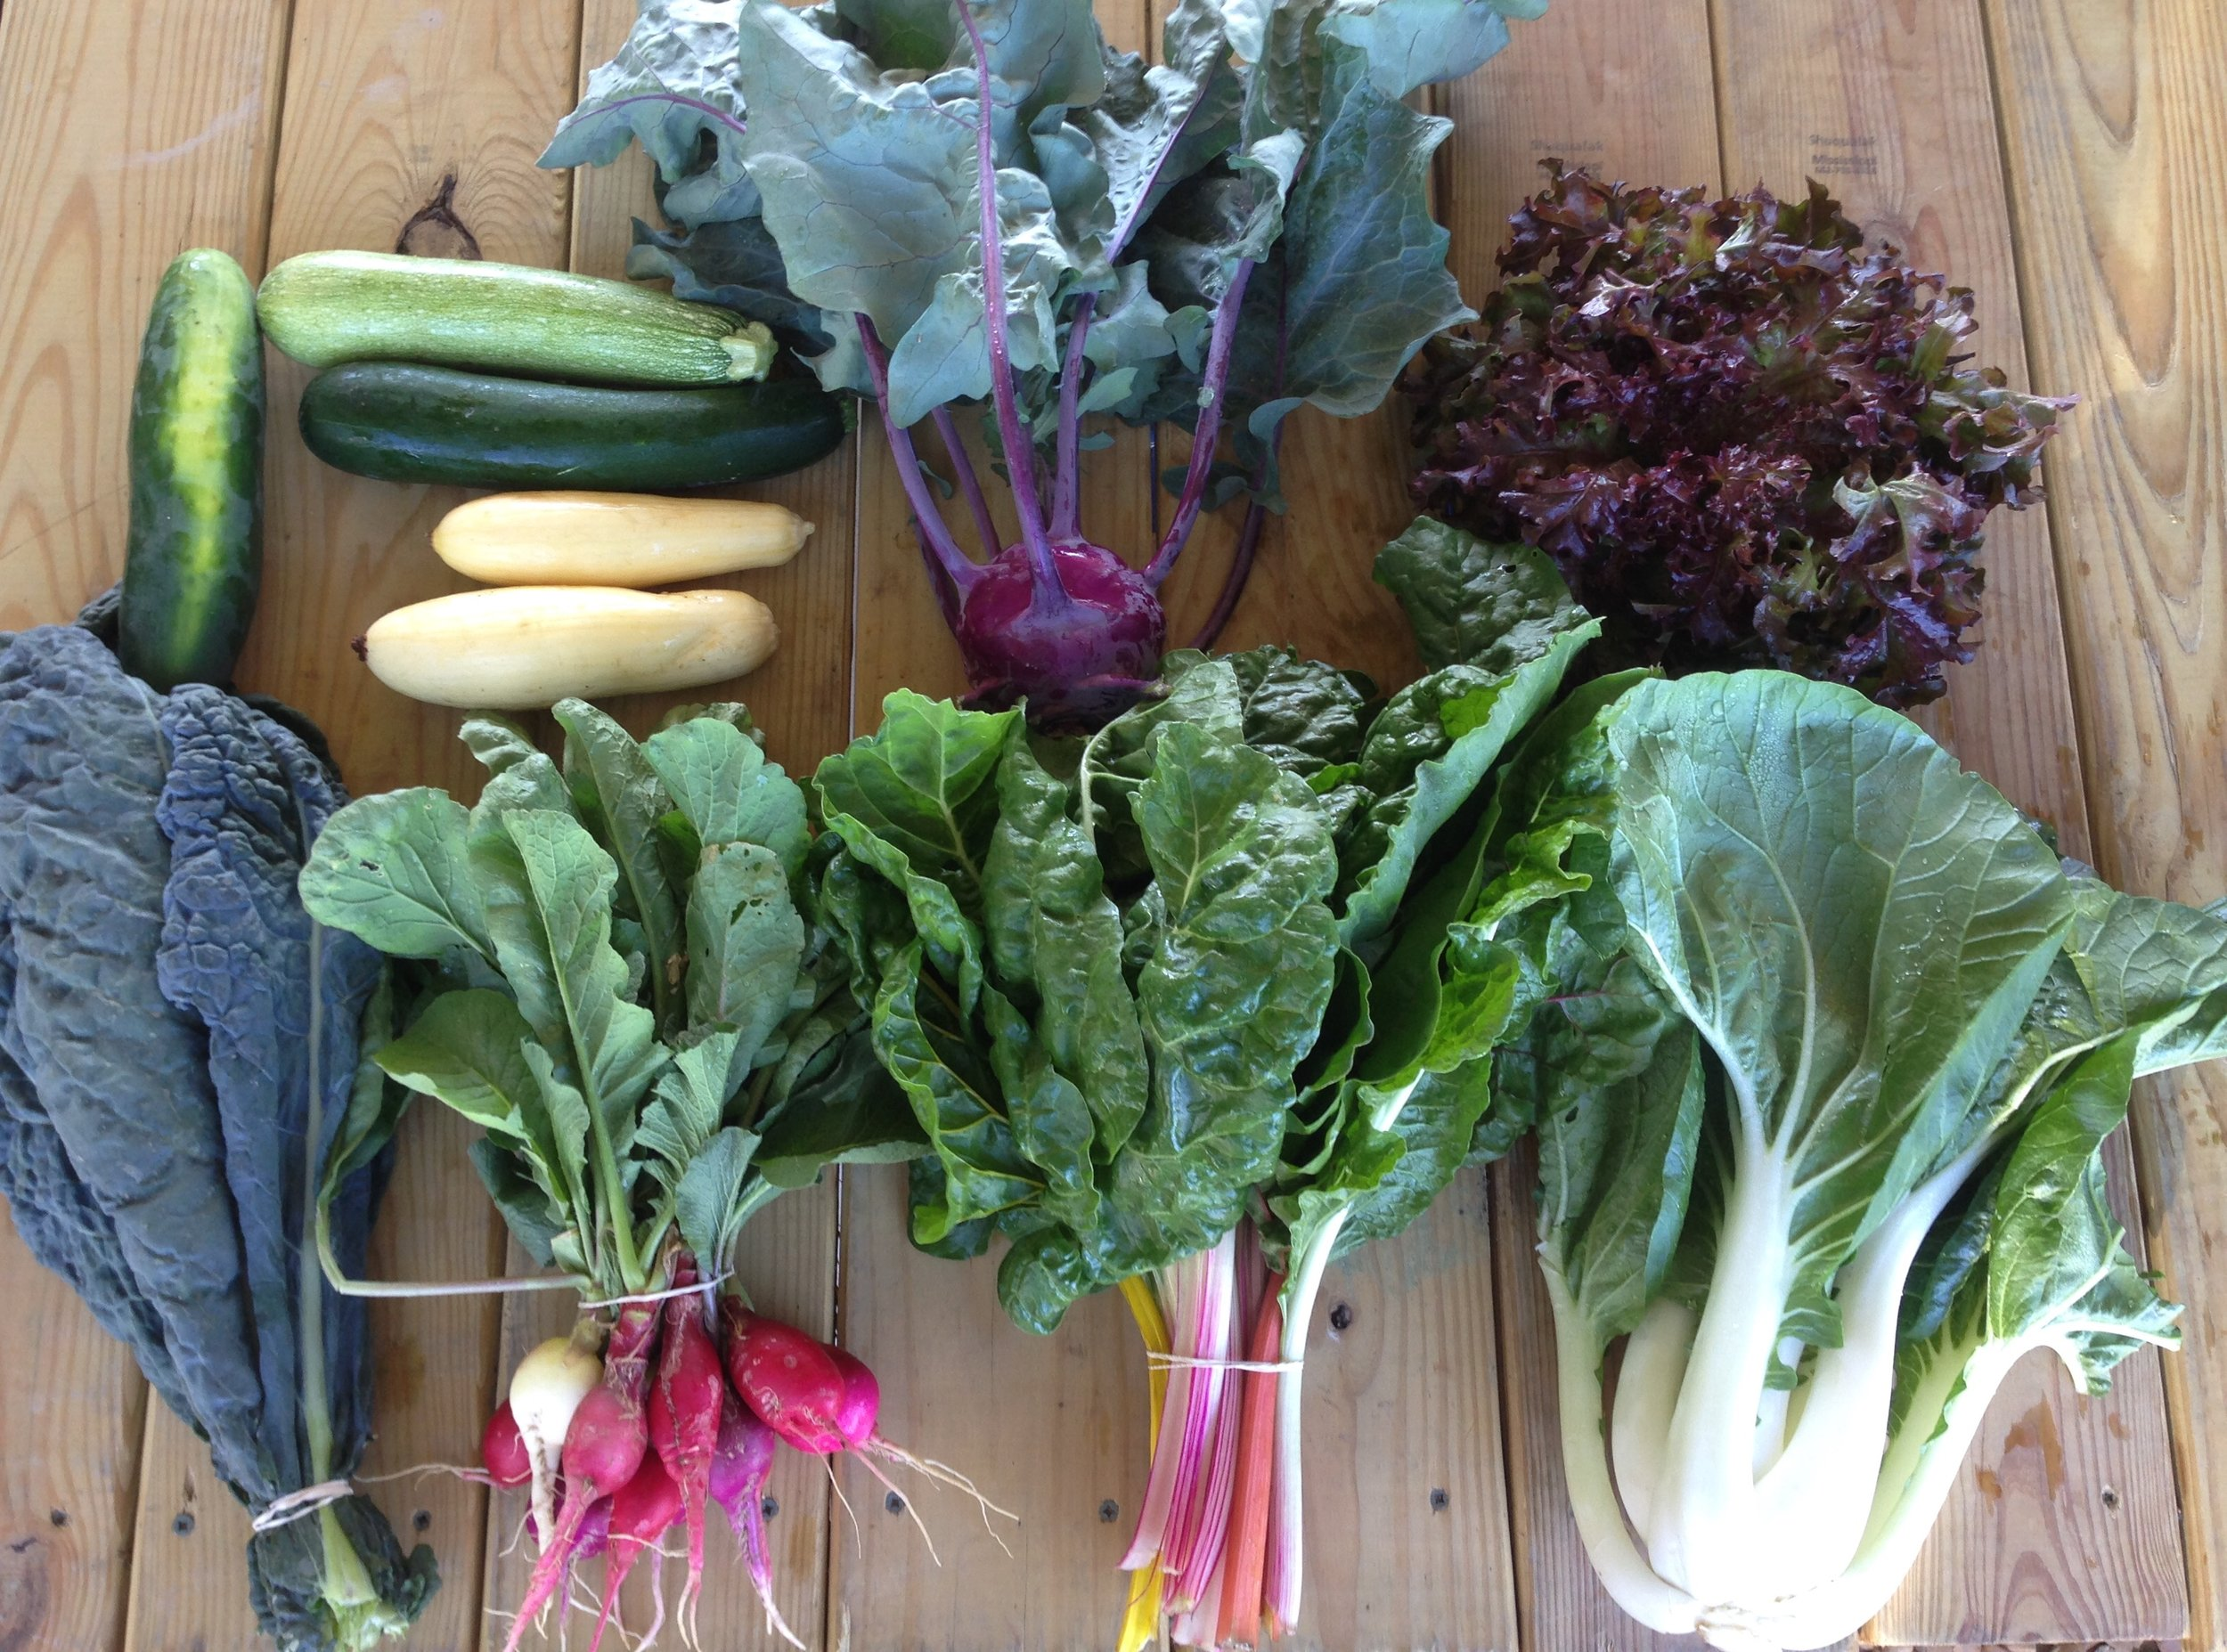 Contents of this week's box: Top row: cucumber, zucchini, squash, kohlrabi, lettuce. Bottom row: dino kale, easter egg radishes, swiss chard, bok choy